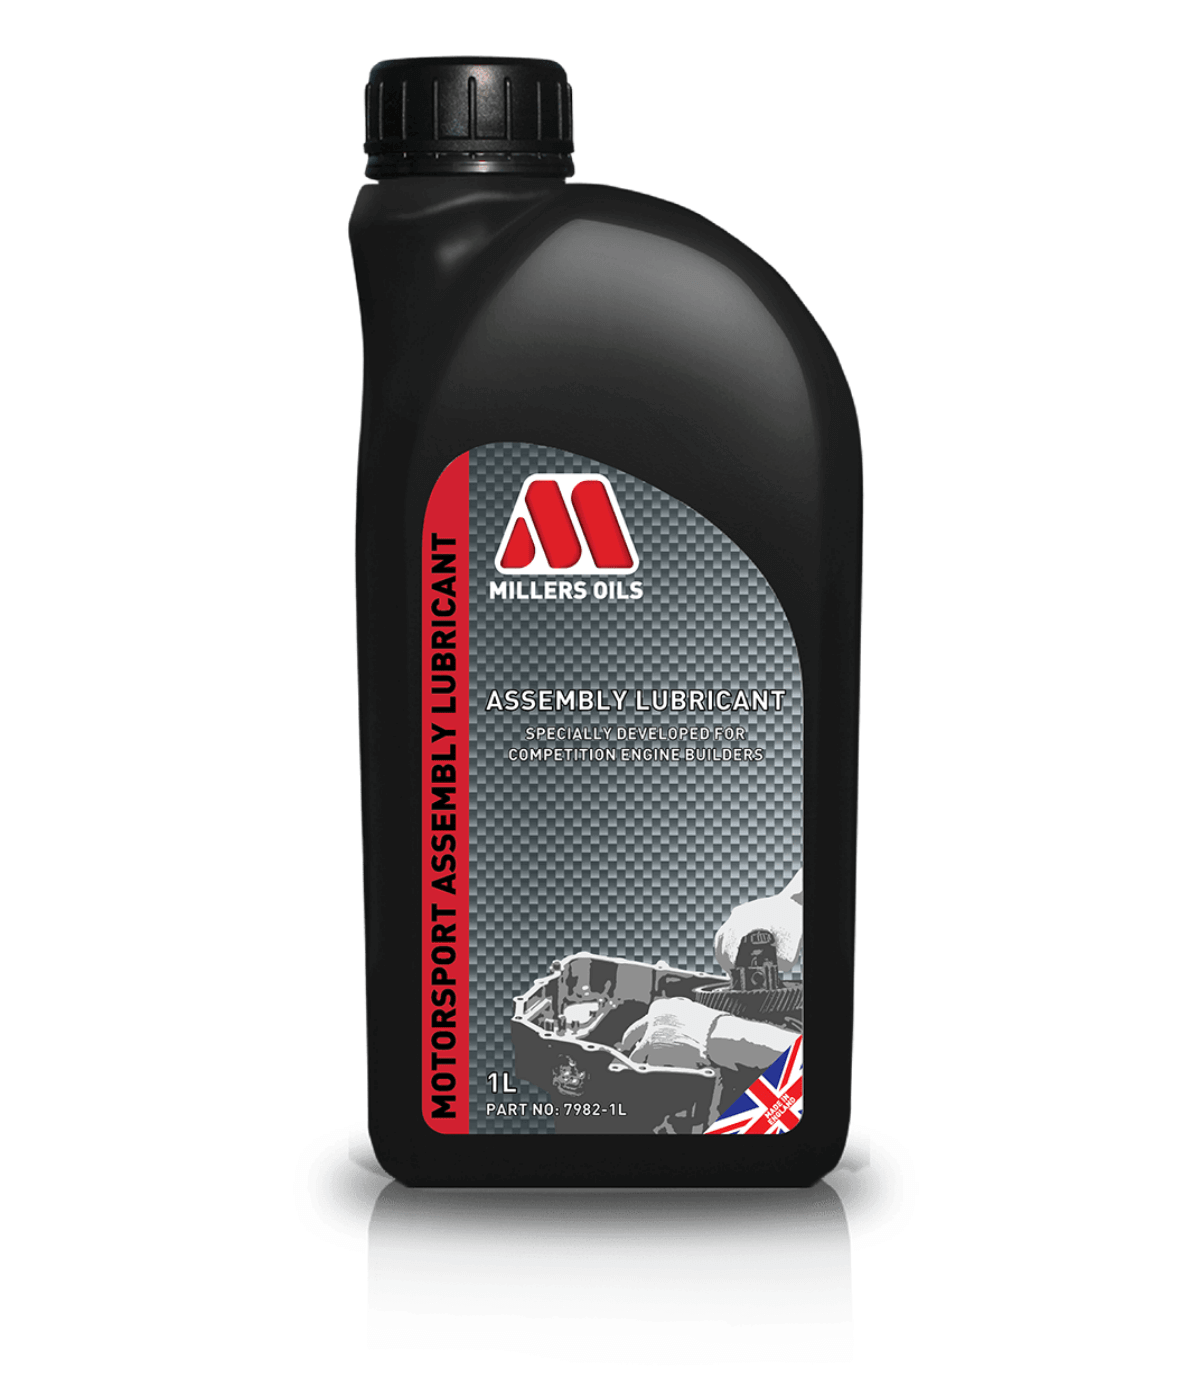 Assembly_Lubricant_1L